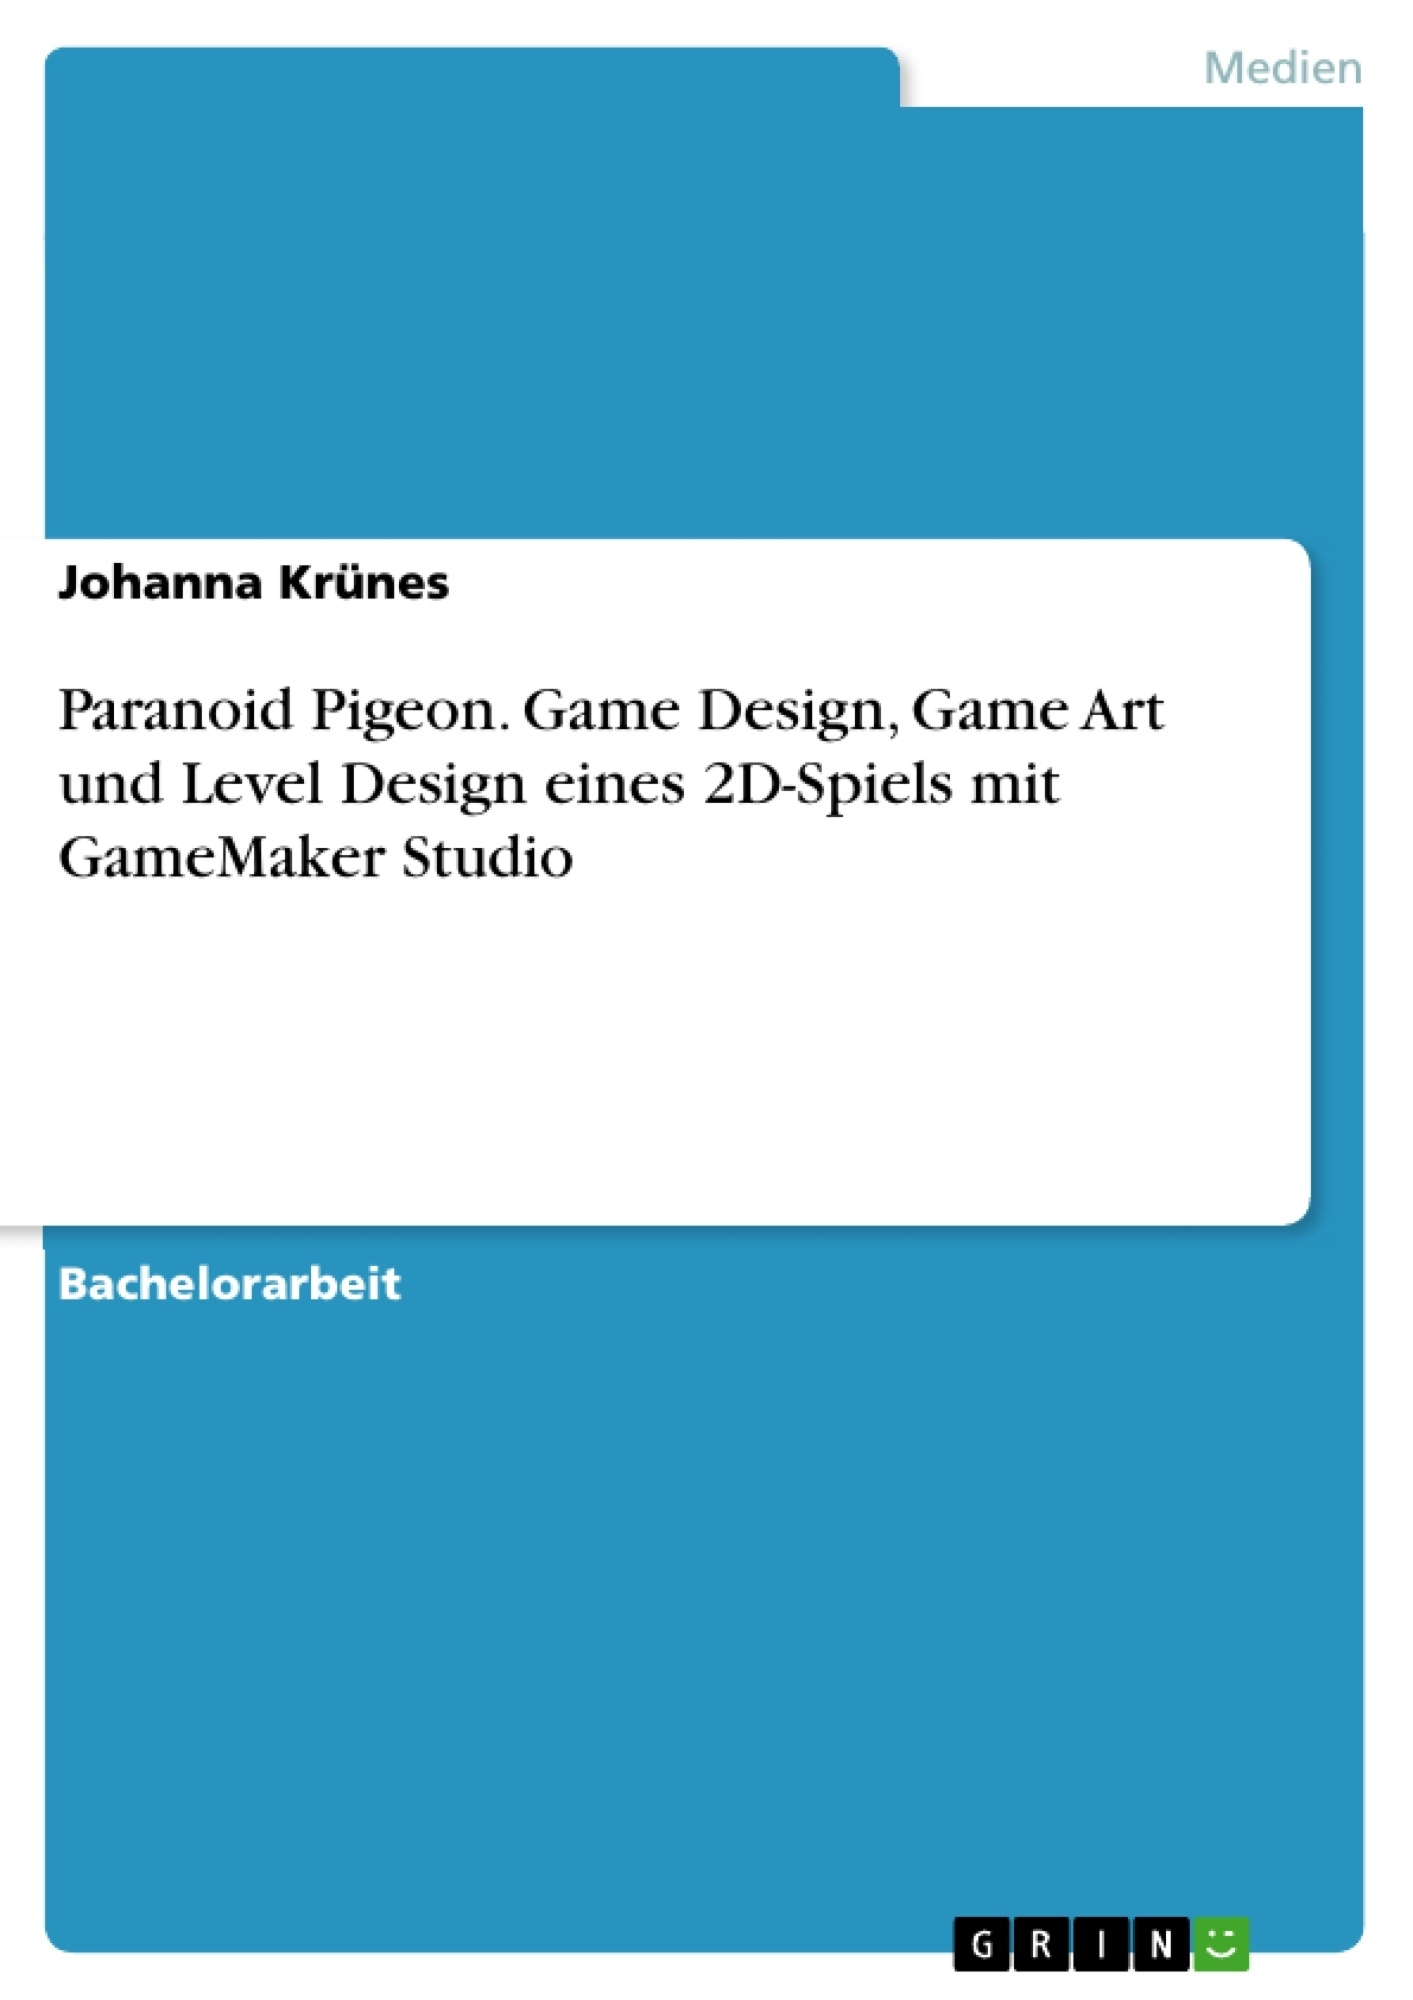 Titel: Paranoid Pigeon. Game Design, Game Art und Level Design eines 2D-Spiels mit GameMaker Studio